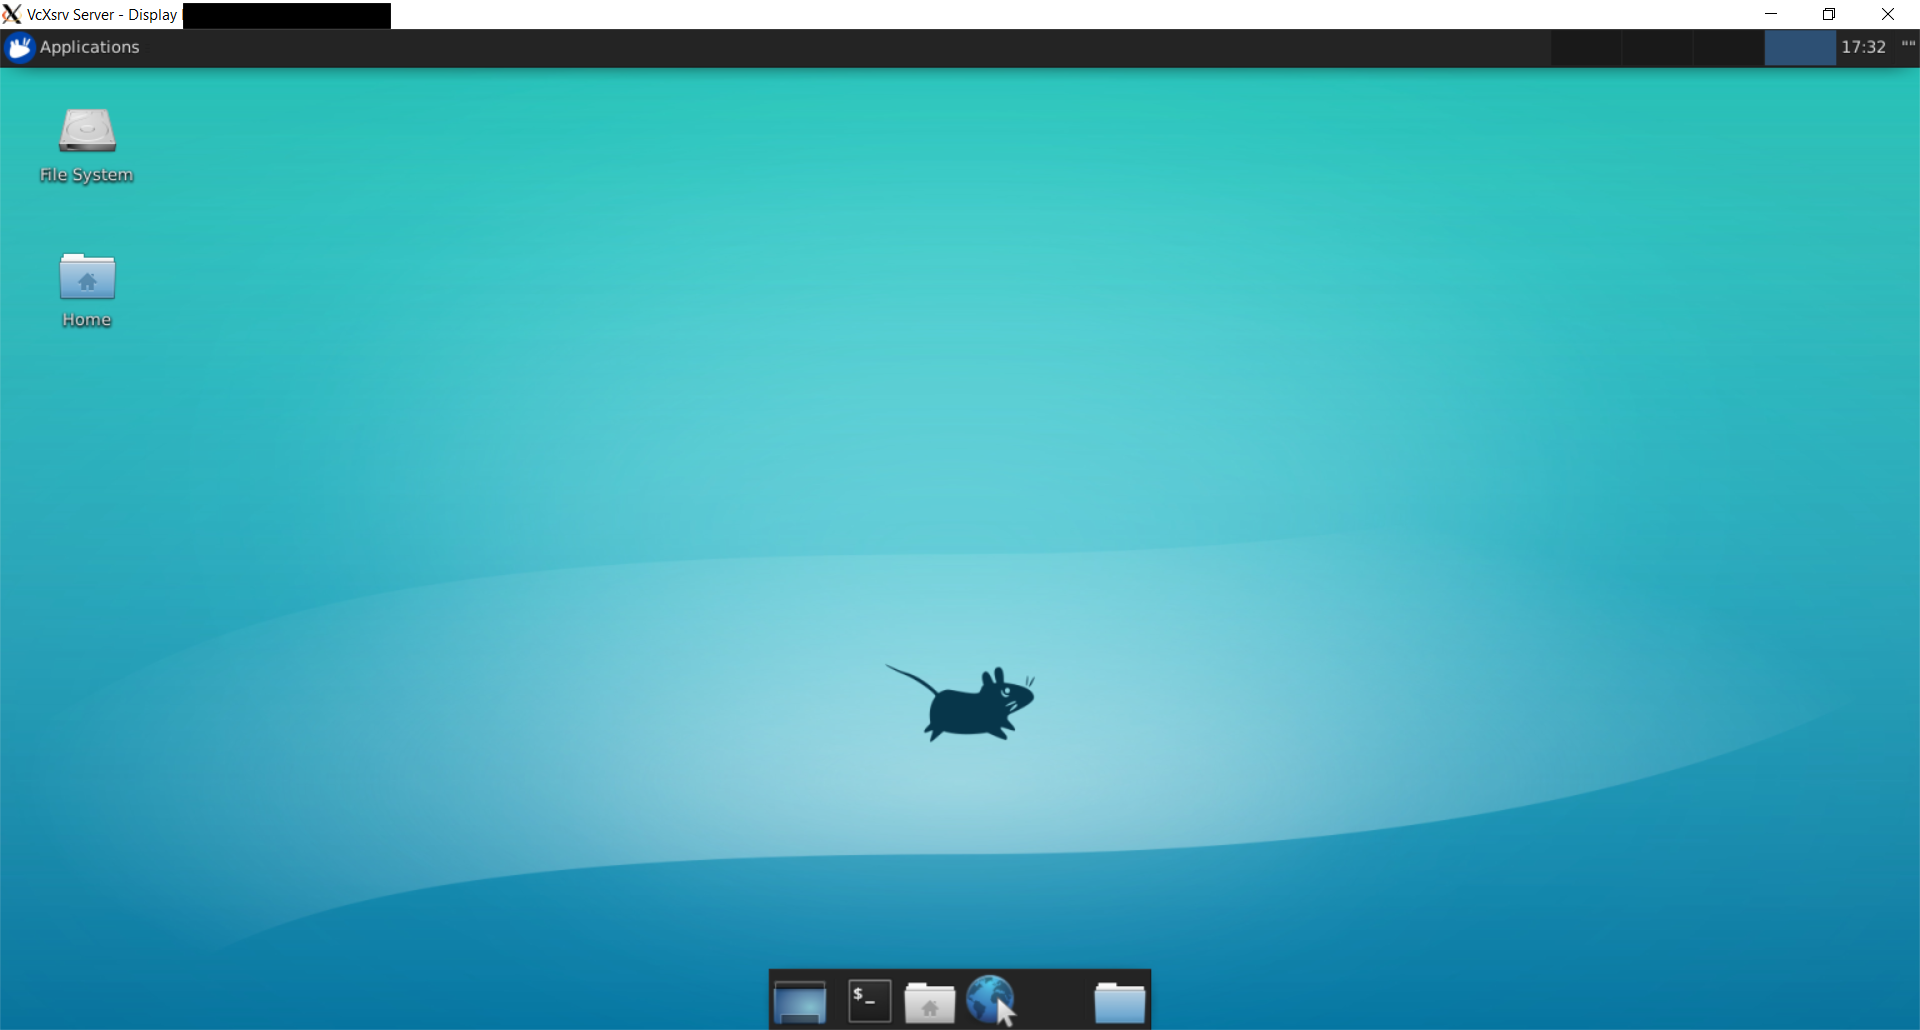 Xfce 4 running under Windows Subsystem for Linux